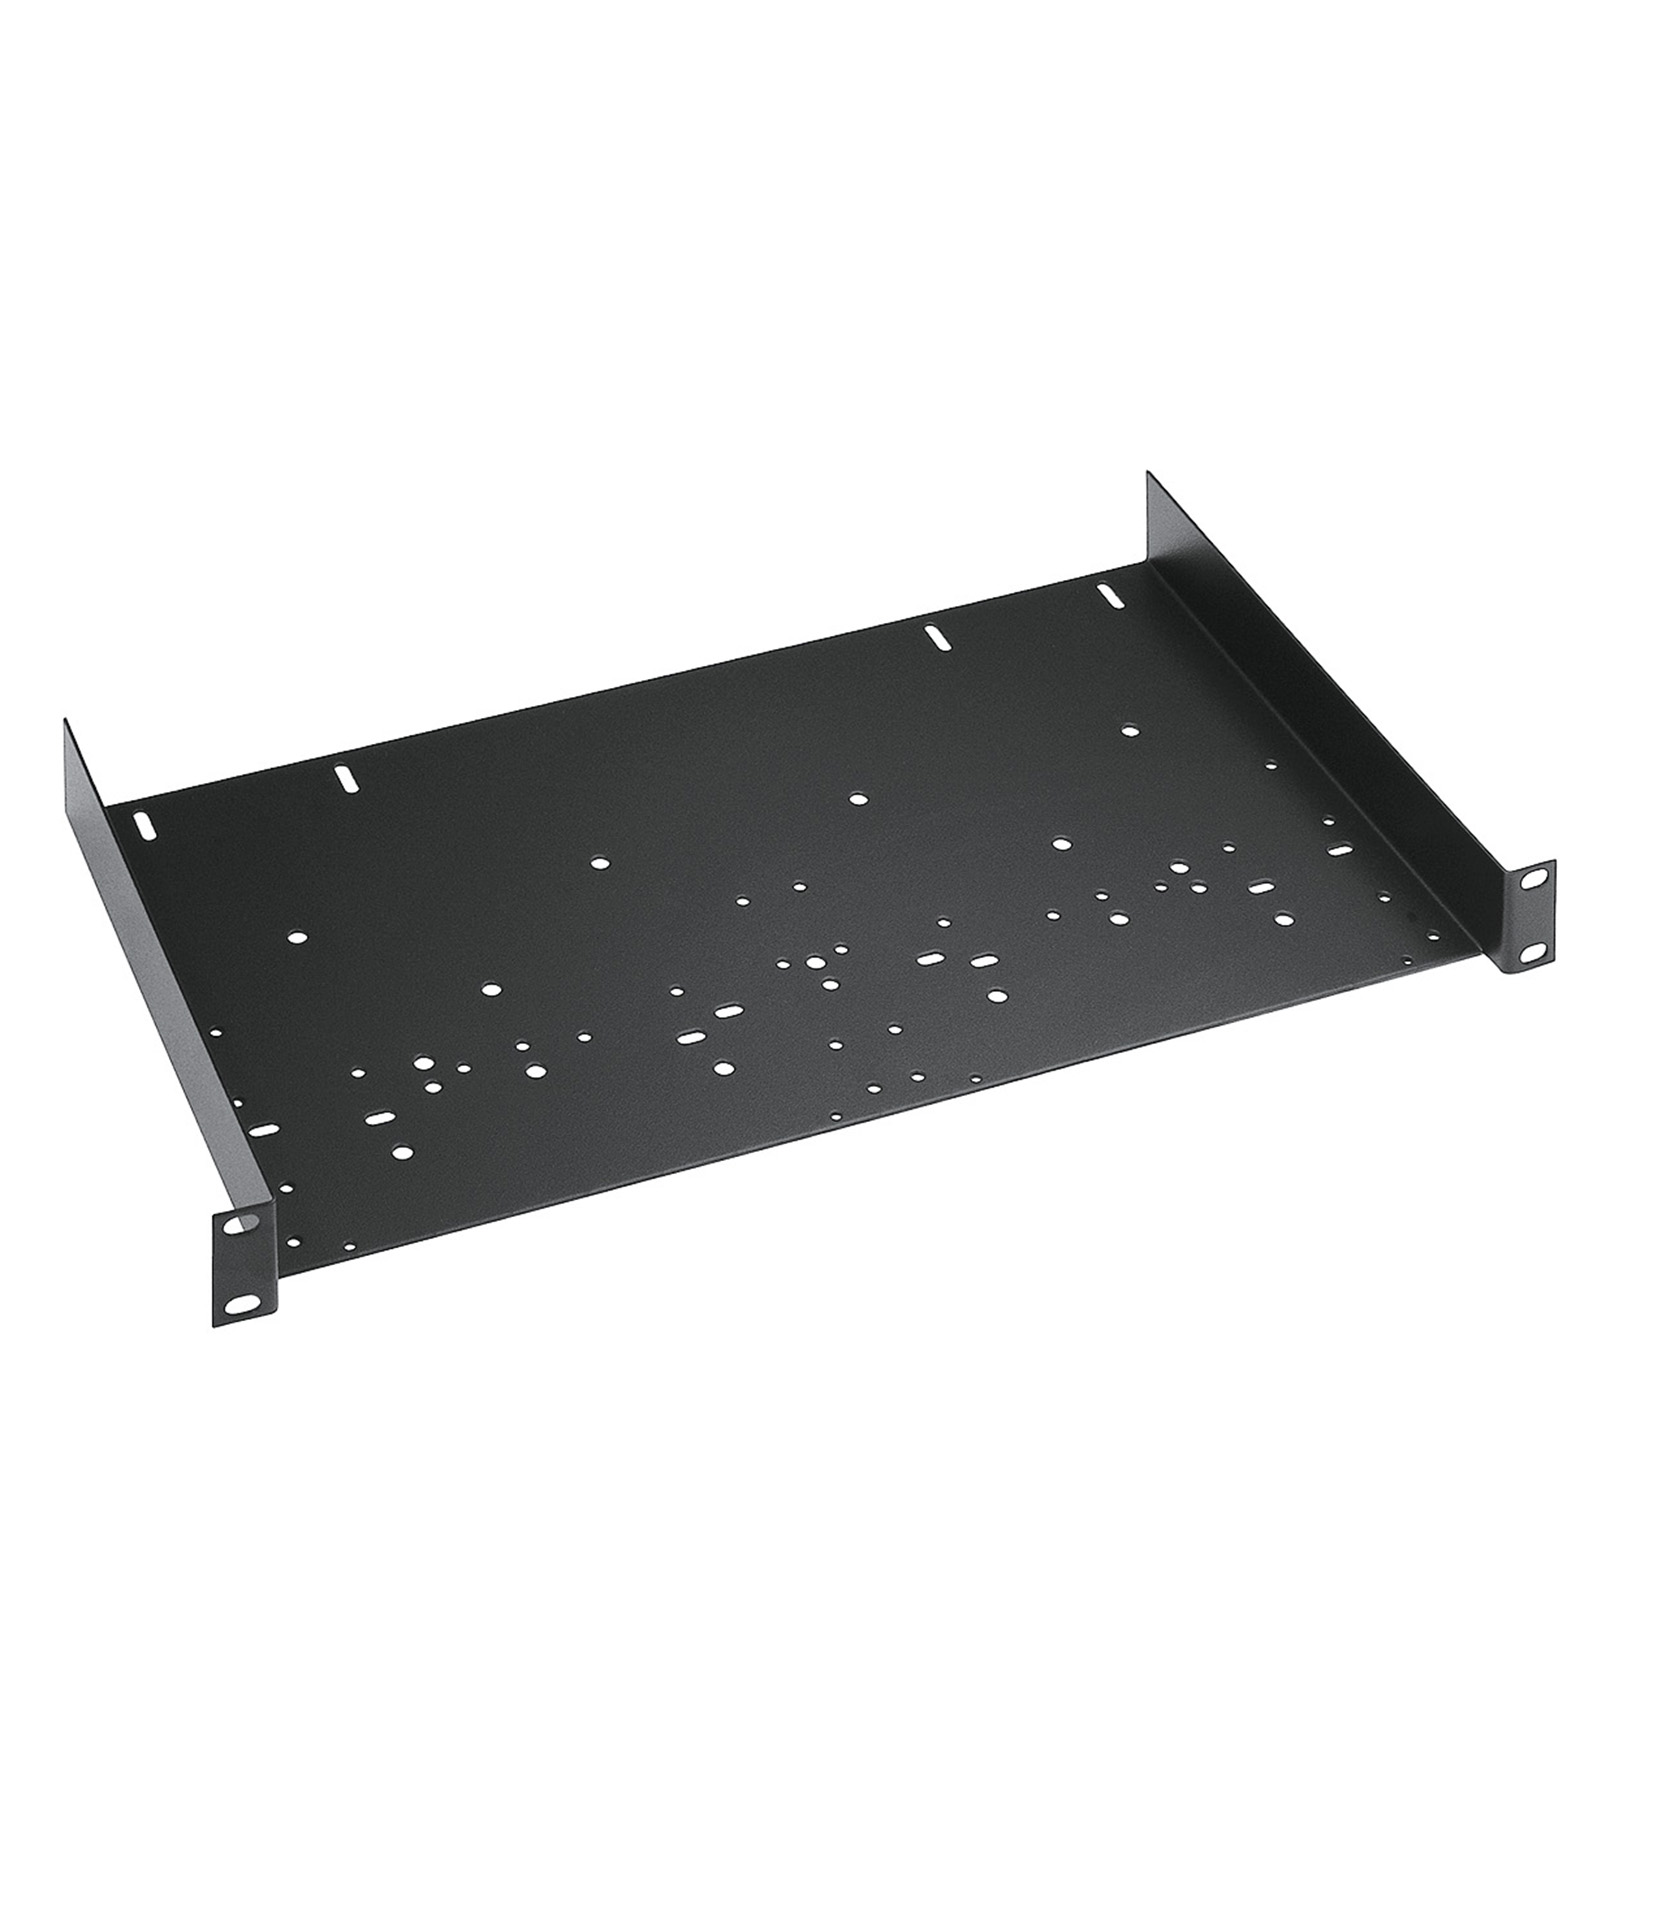 Buy K&M - 49035 000 55Universal rack shelf